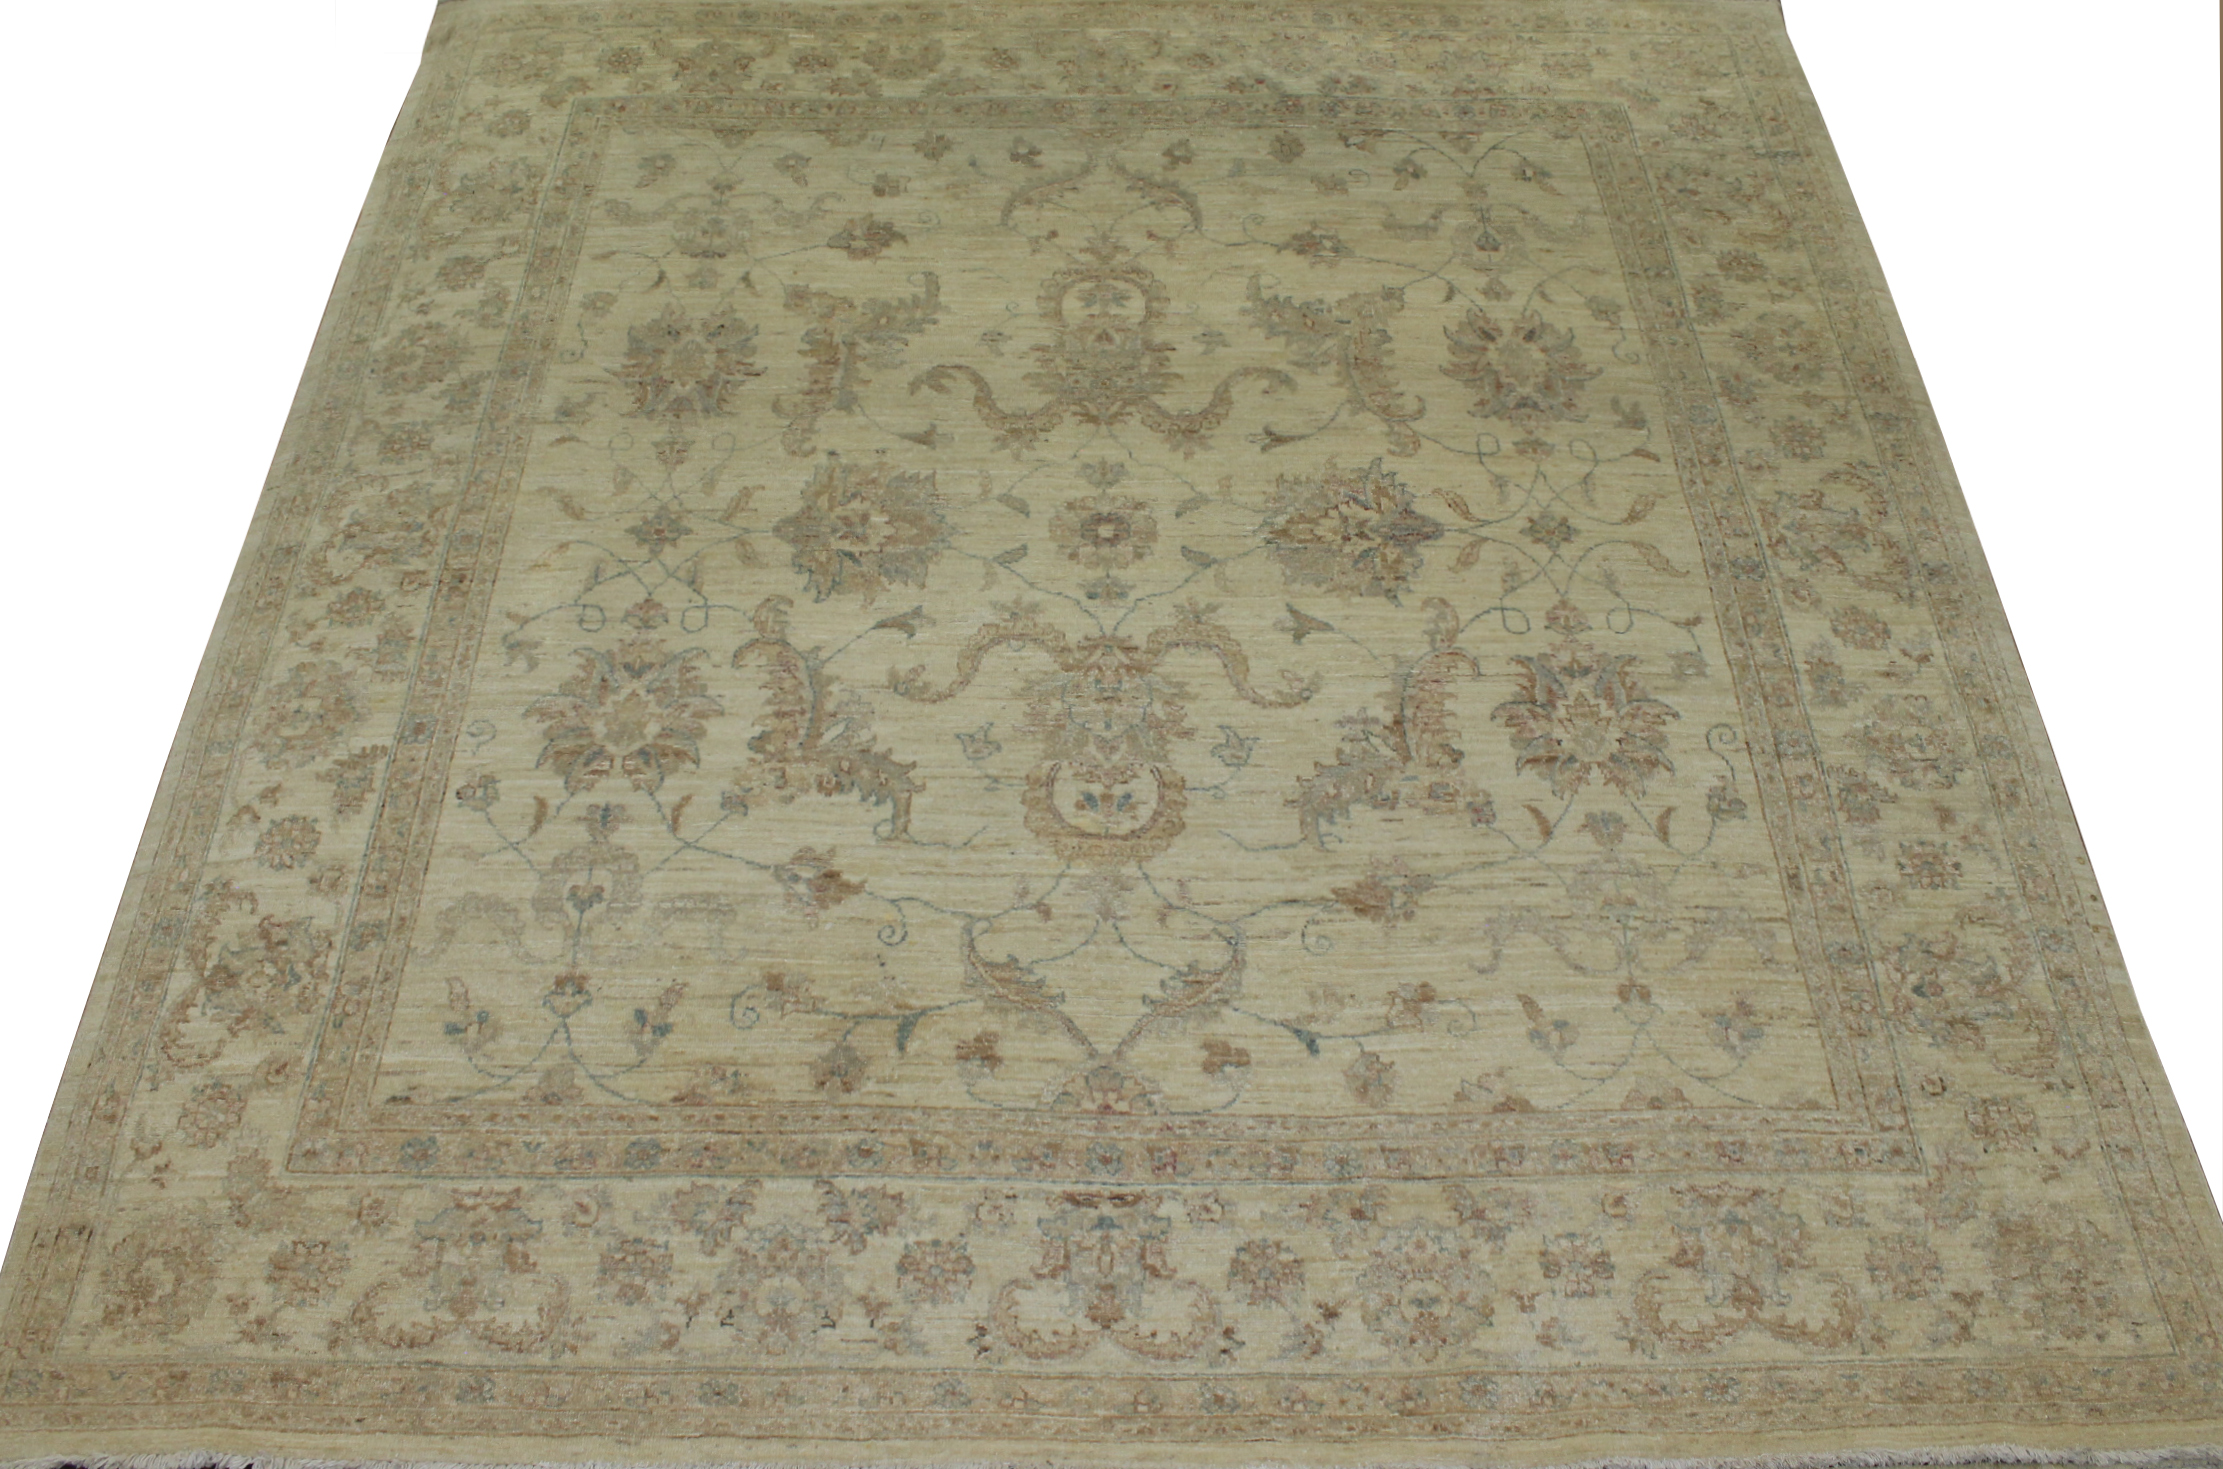 8 ft. Round & Square Peshawar Hand Knotted Wool Area Rug - MR014983